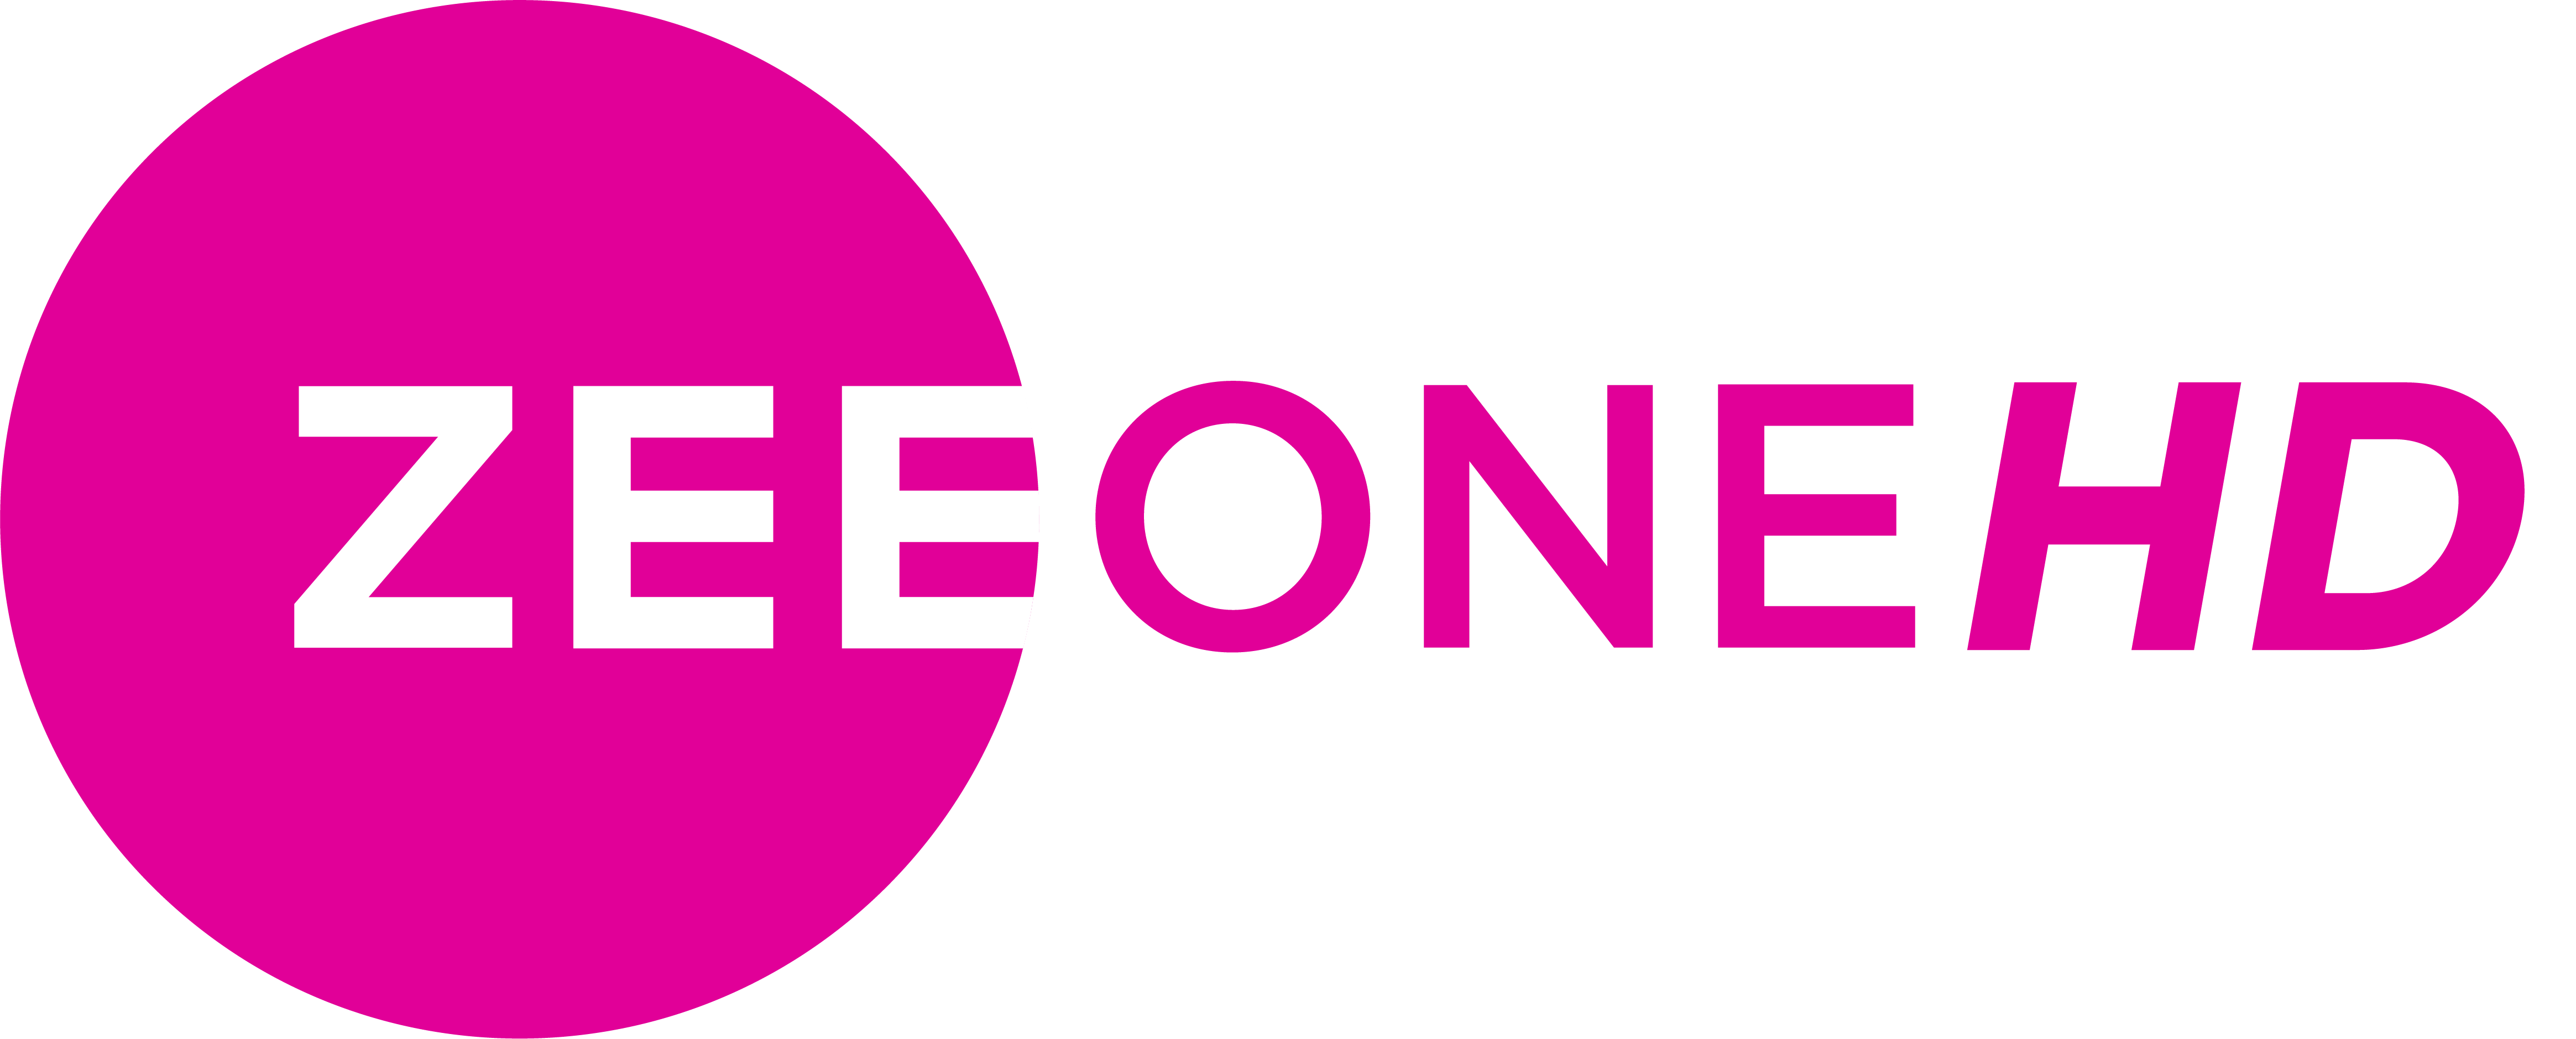 Zee.One HD Logo